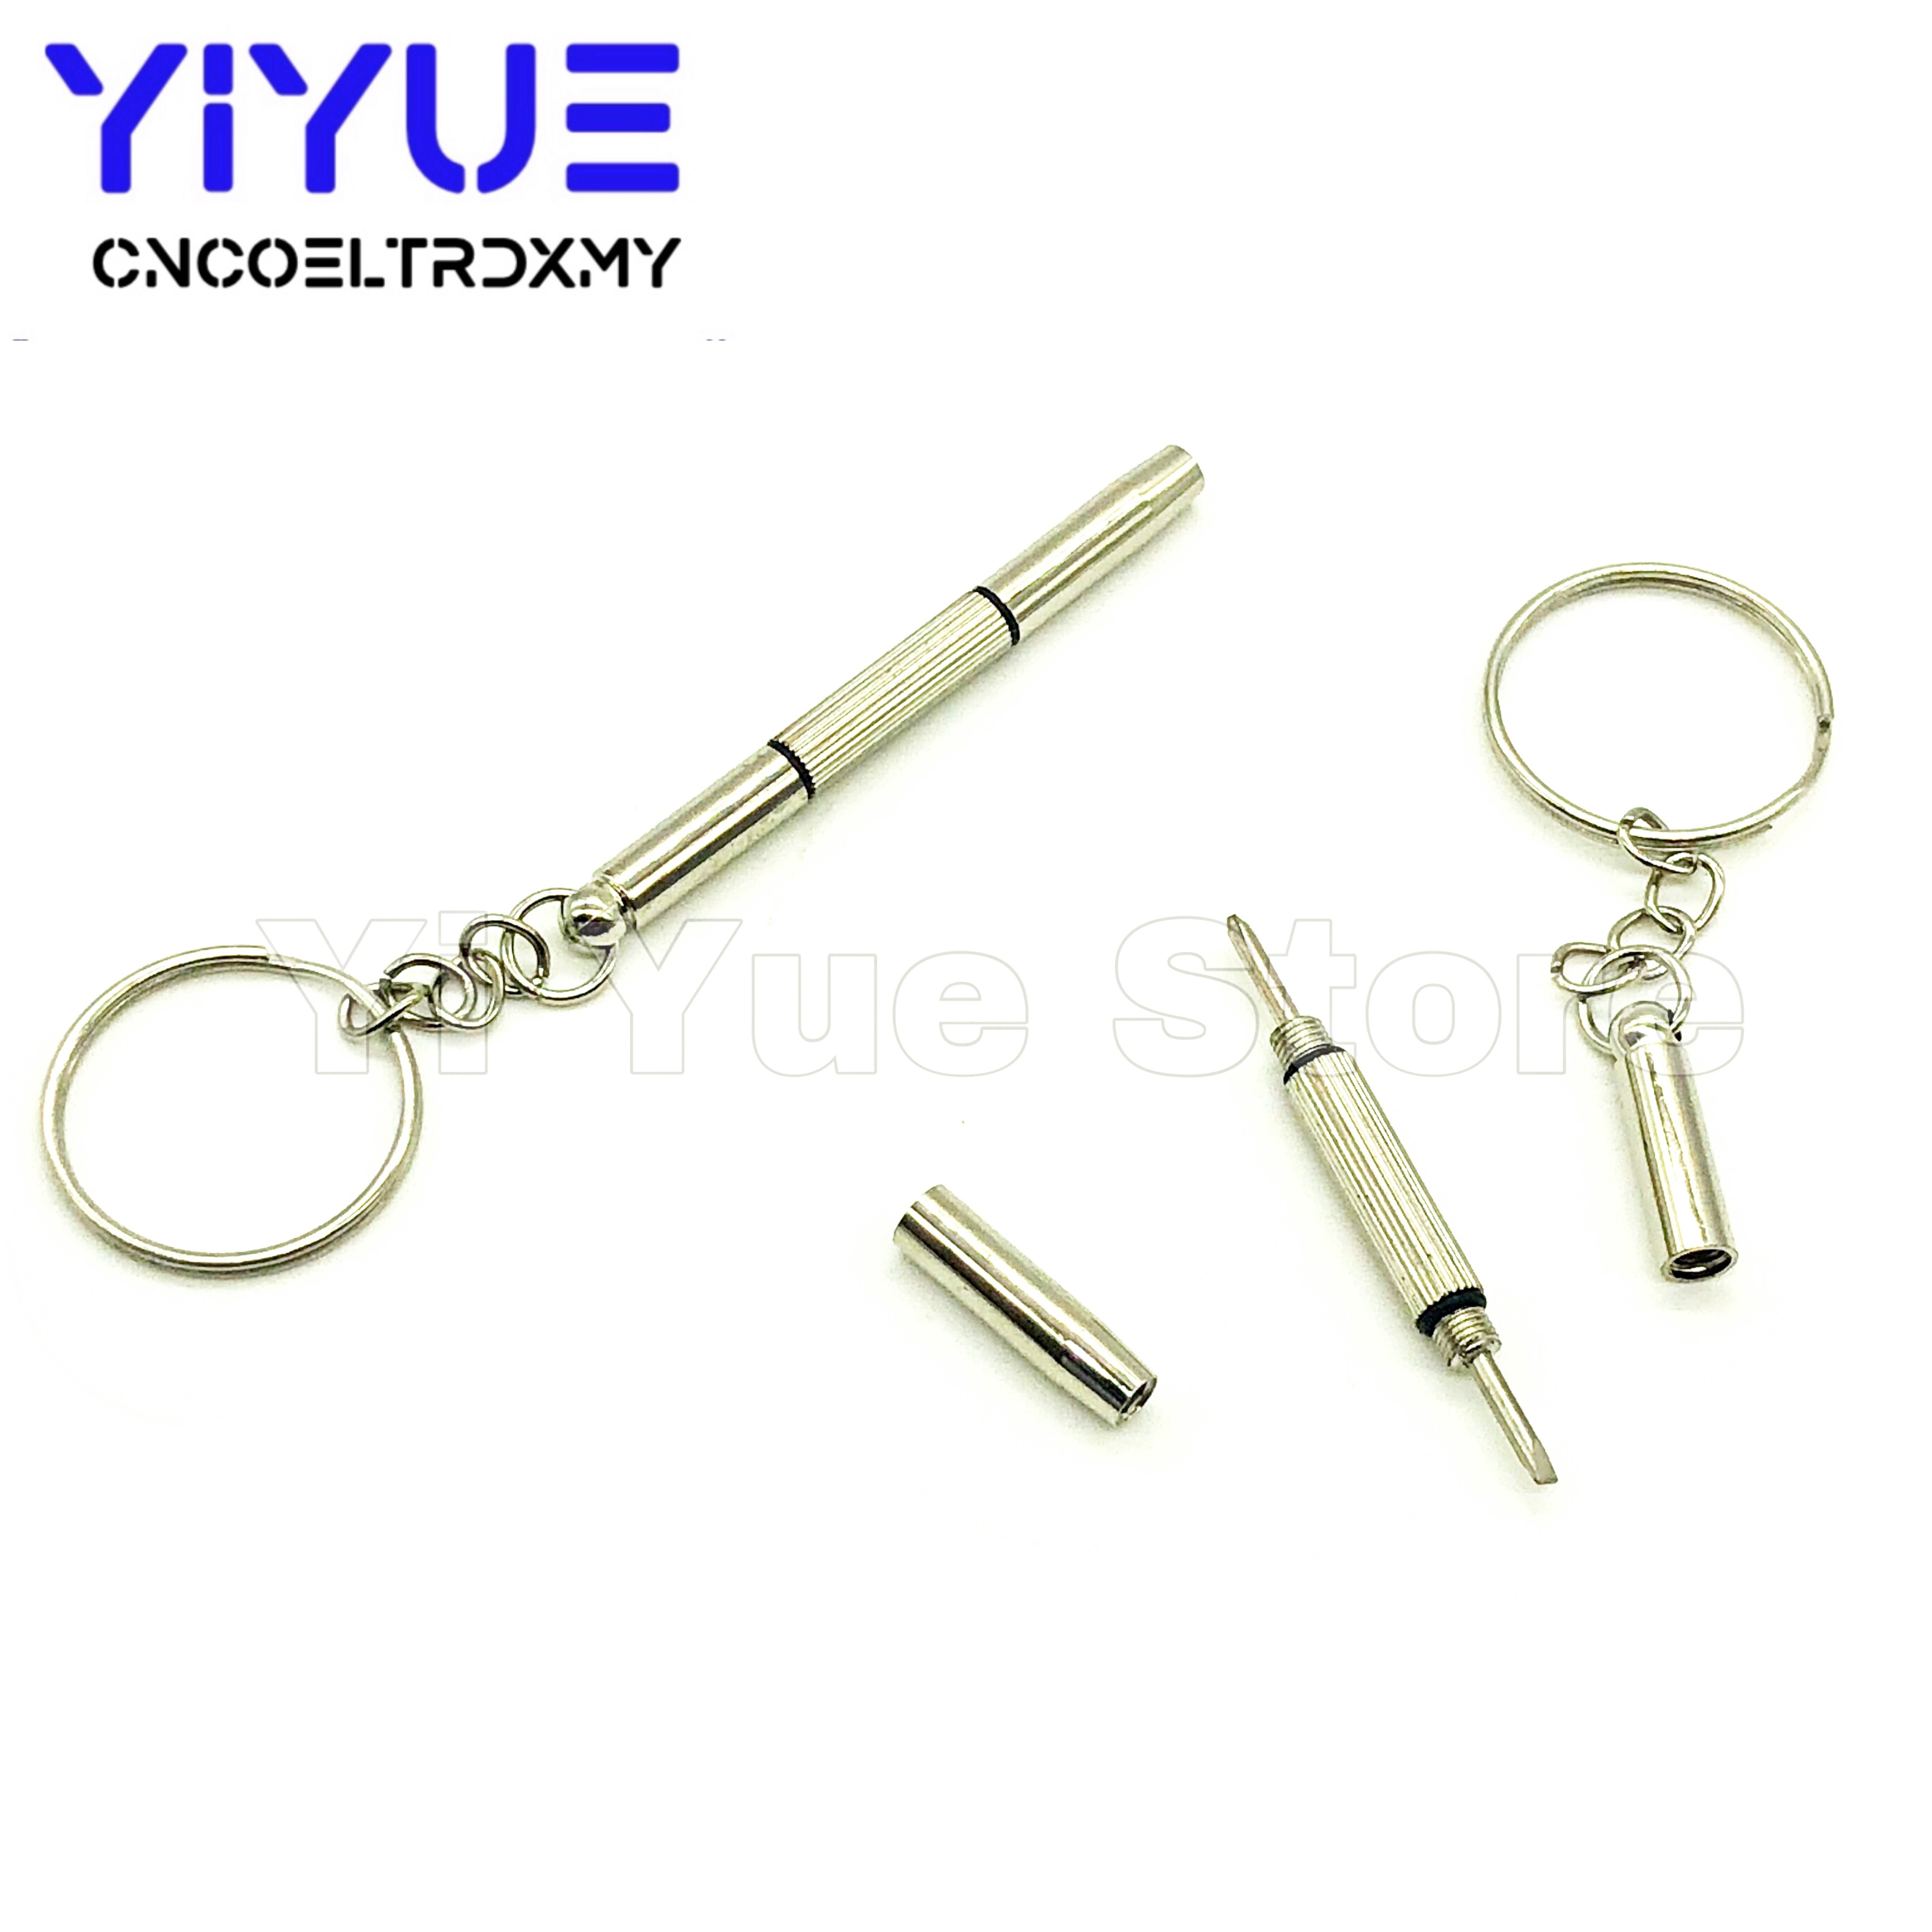 Portable 3 In 1 Keychain Screwdriver Eyeglass Sunglasses Watch Repair Kit Tool